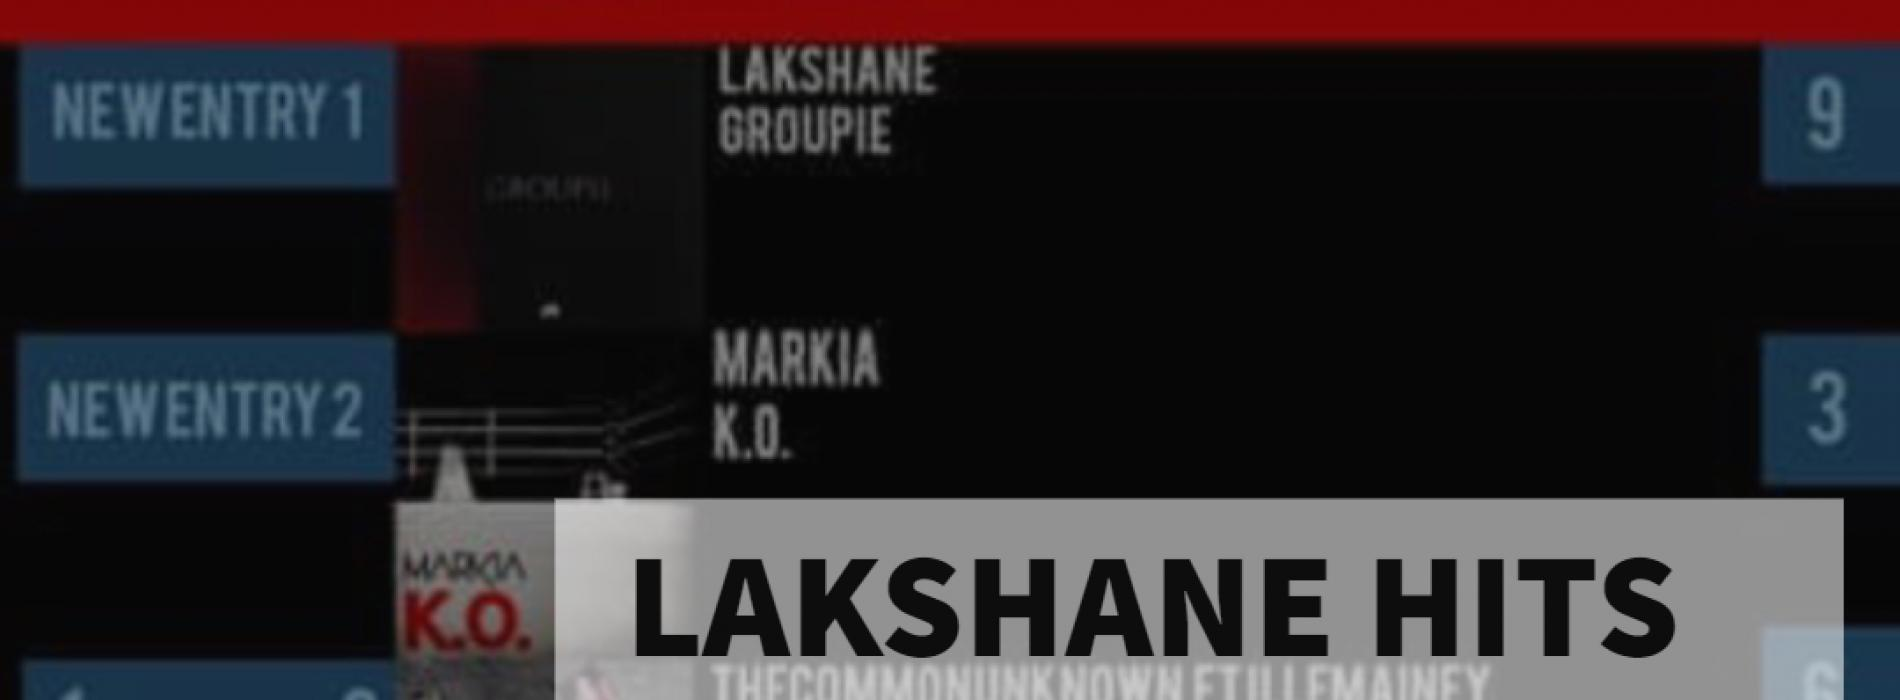 Lakshane Checks In At Number 1 With 'Groupie'